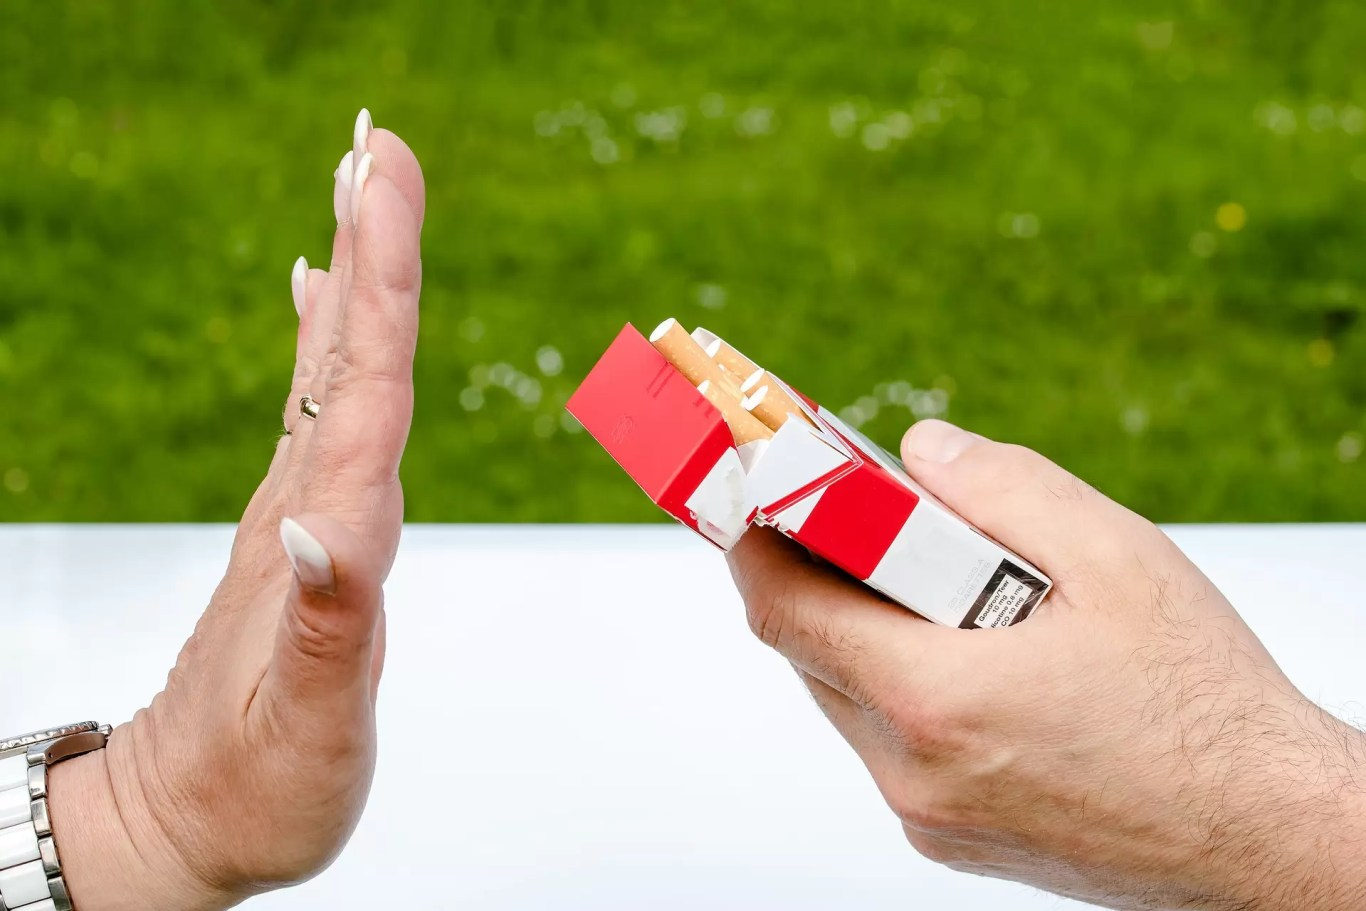 Warnings on cigarettes could curb smoking